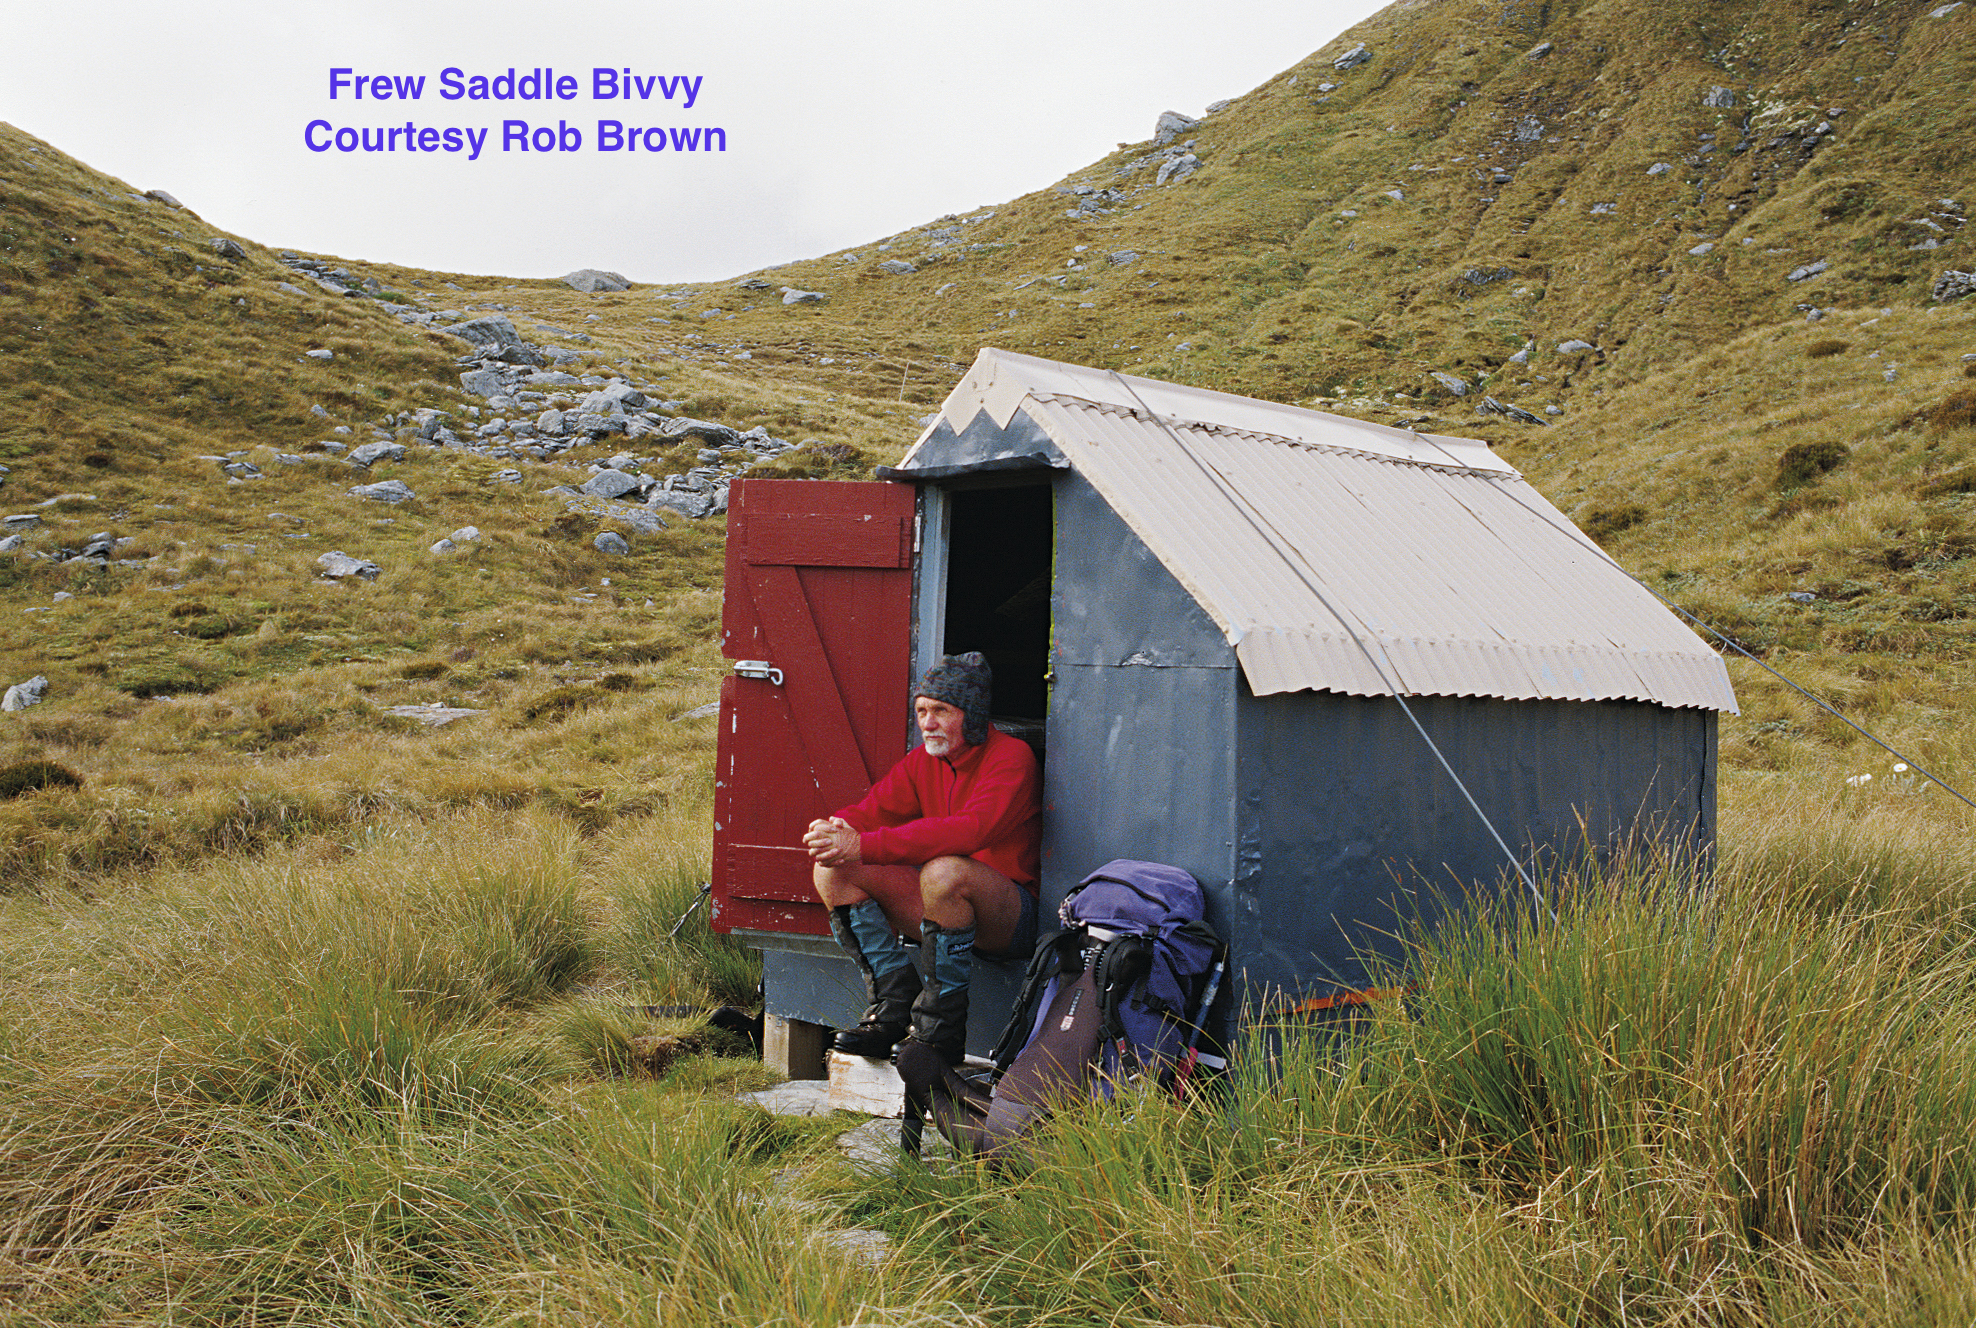 Frew Saddle Bivouac, two bunk bivvy built for NZ Forest Service deer cullers